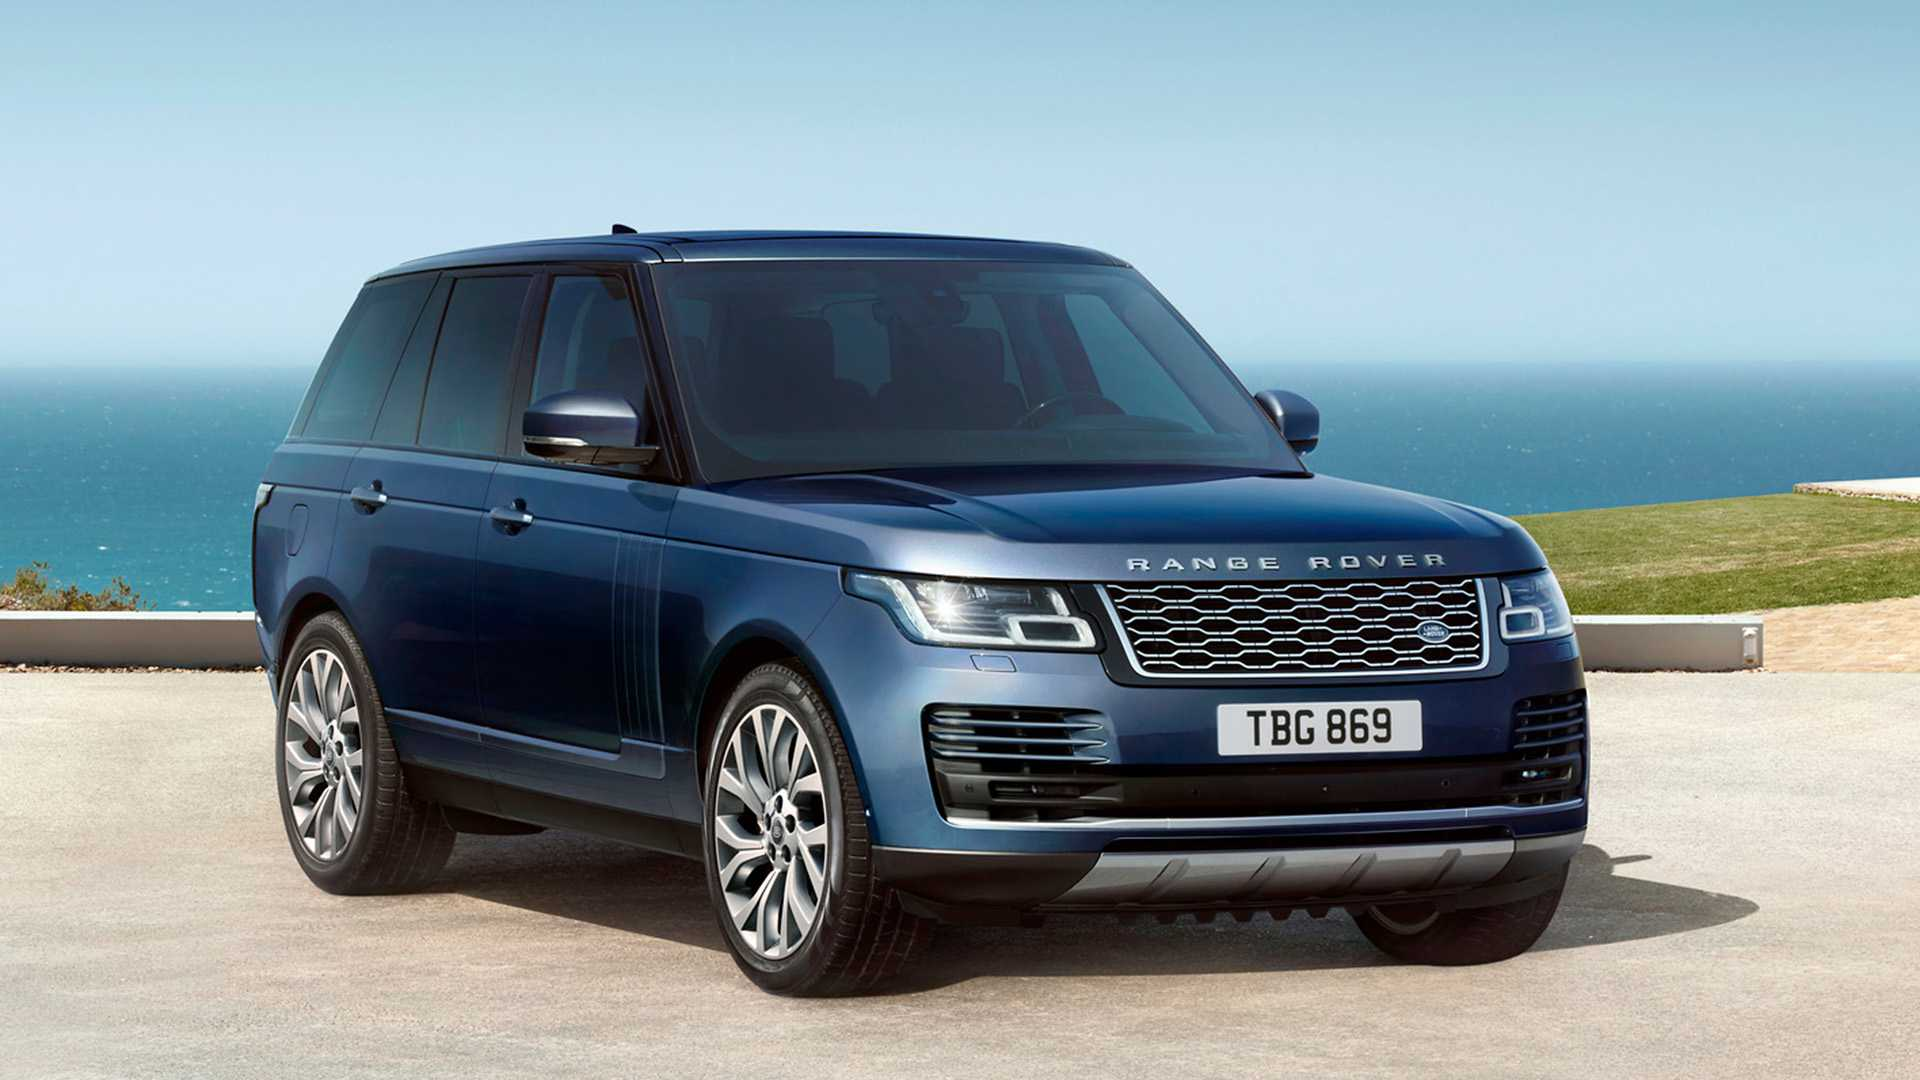 2021 Land Rover Range Rover SUV 3 Quarter Front View